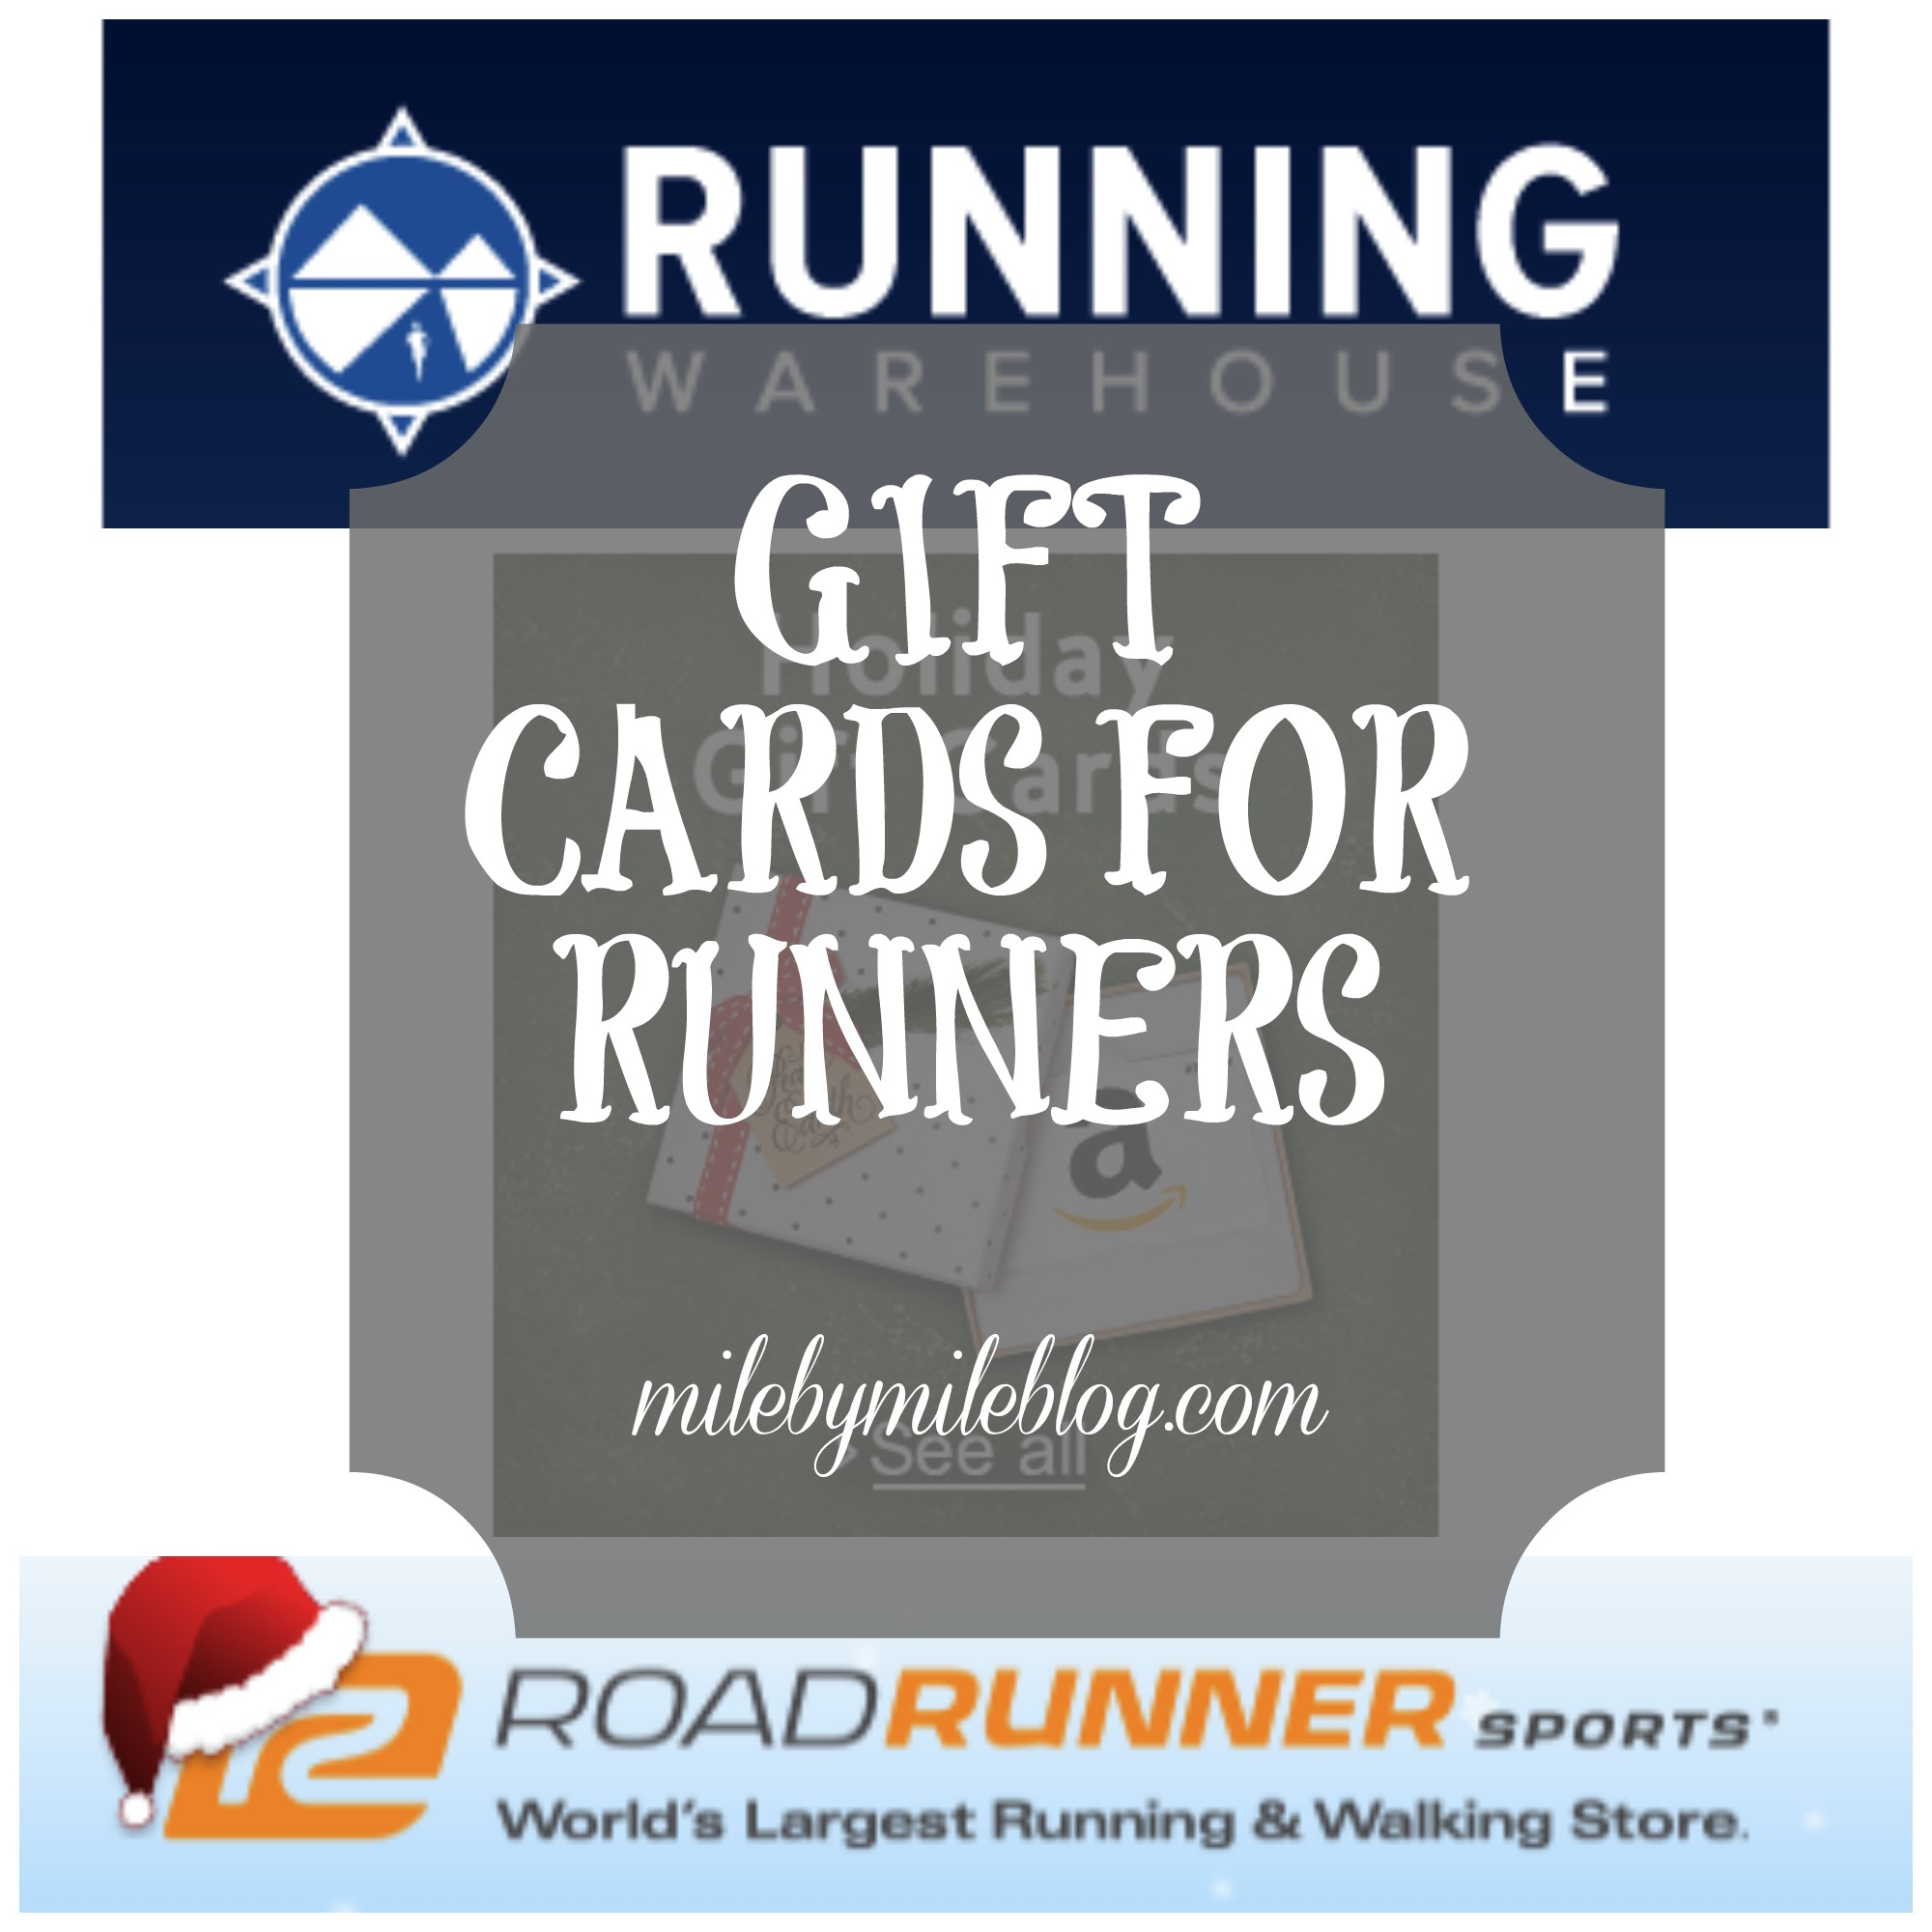 Holiday gift guide for runners 2016 running gifts giveaway gift cards for runners 1betcityfo Gallery